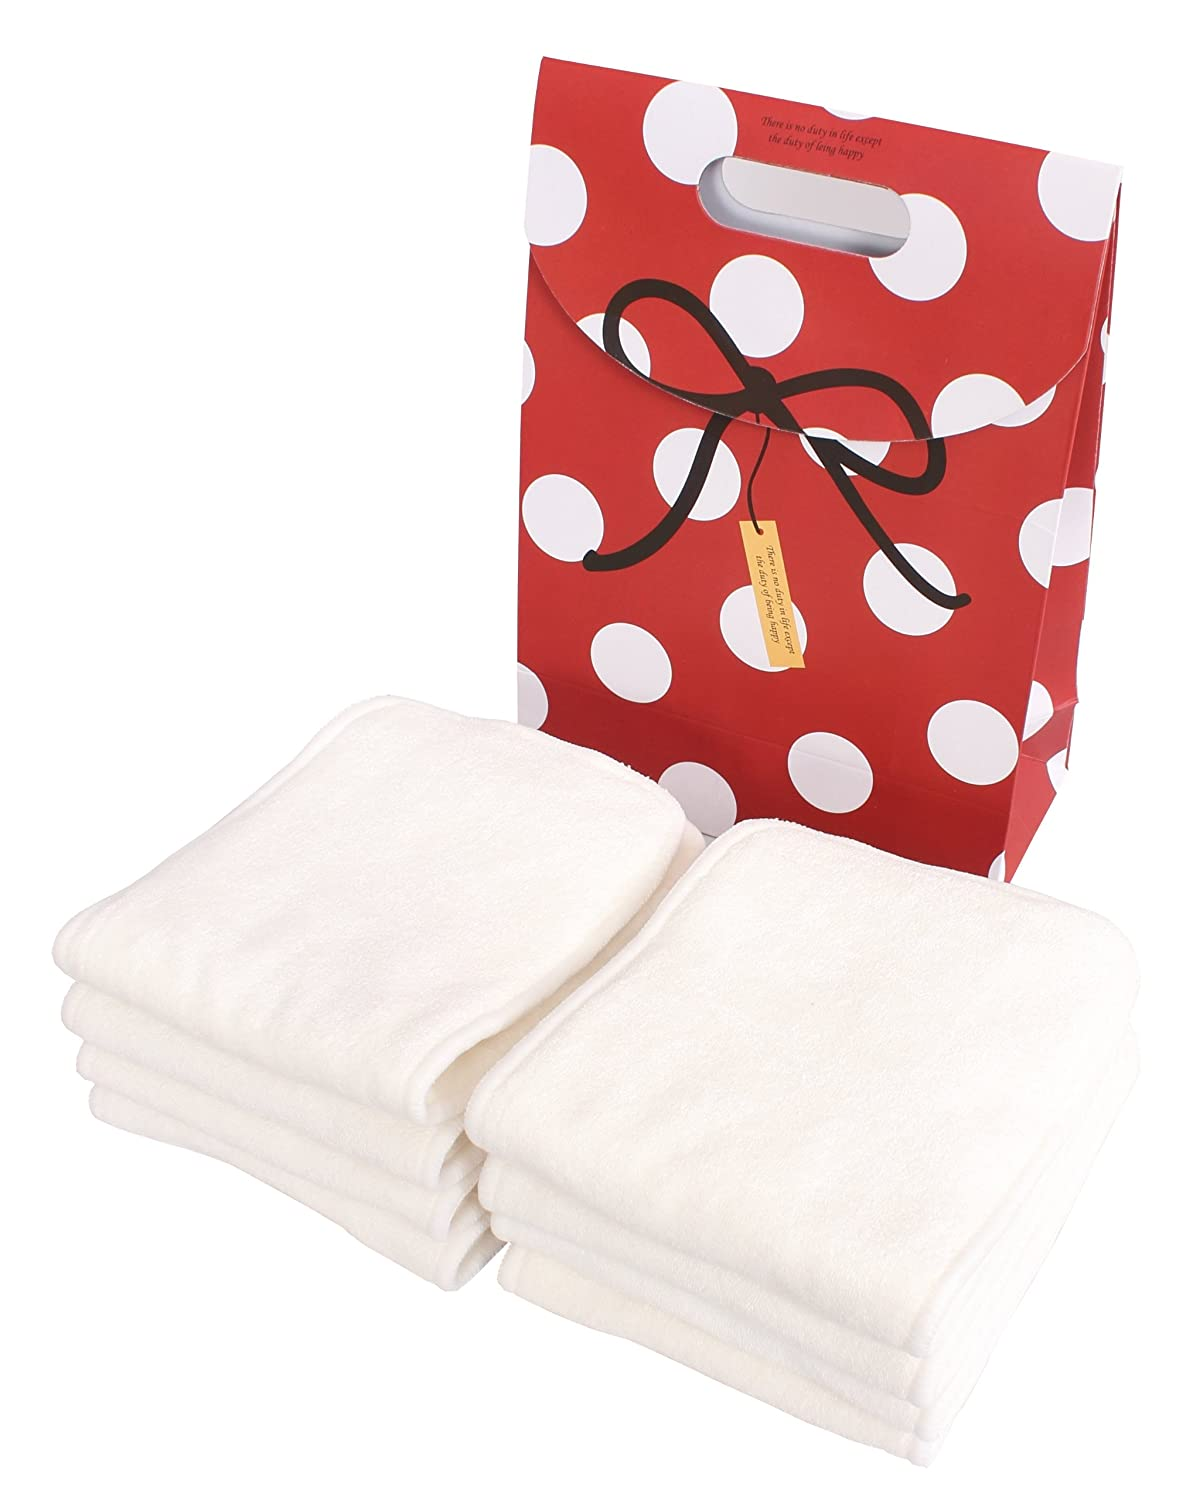 4 Layer Bamboo Inserts Boosters Modern Cloth Reusable Nappy//Diaper 100/% Bamboo